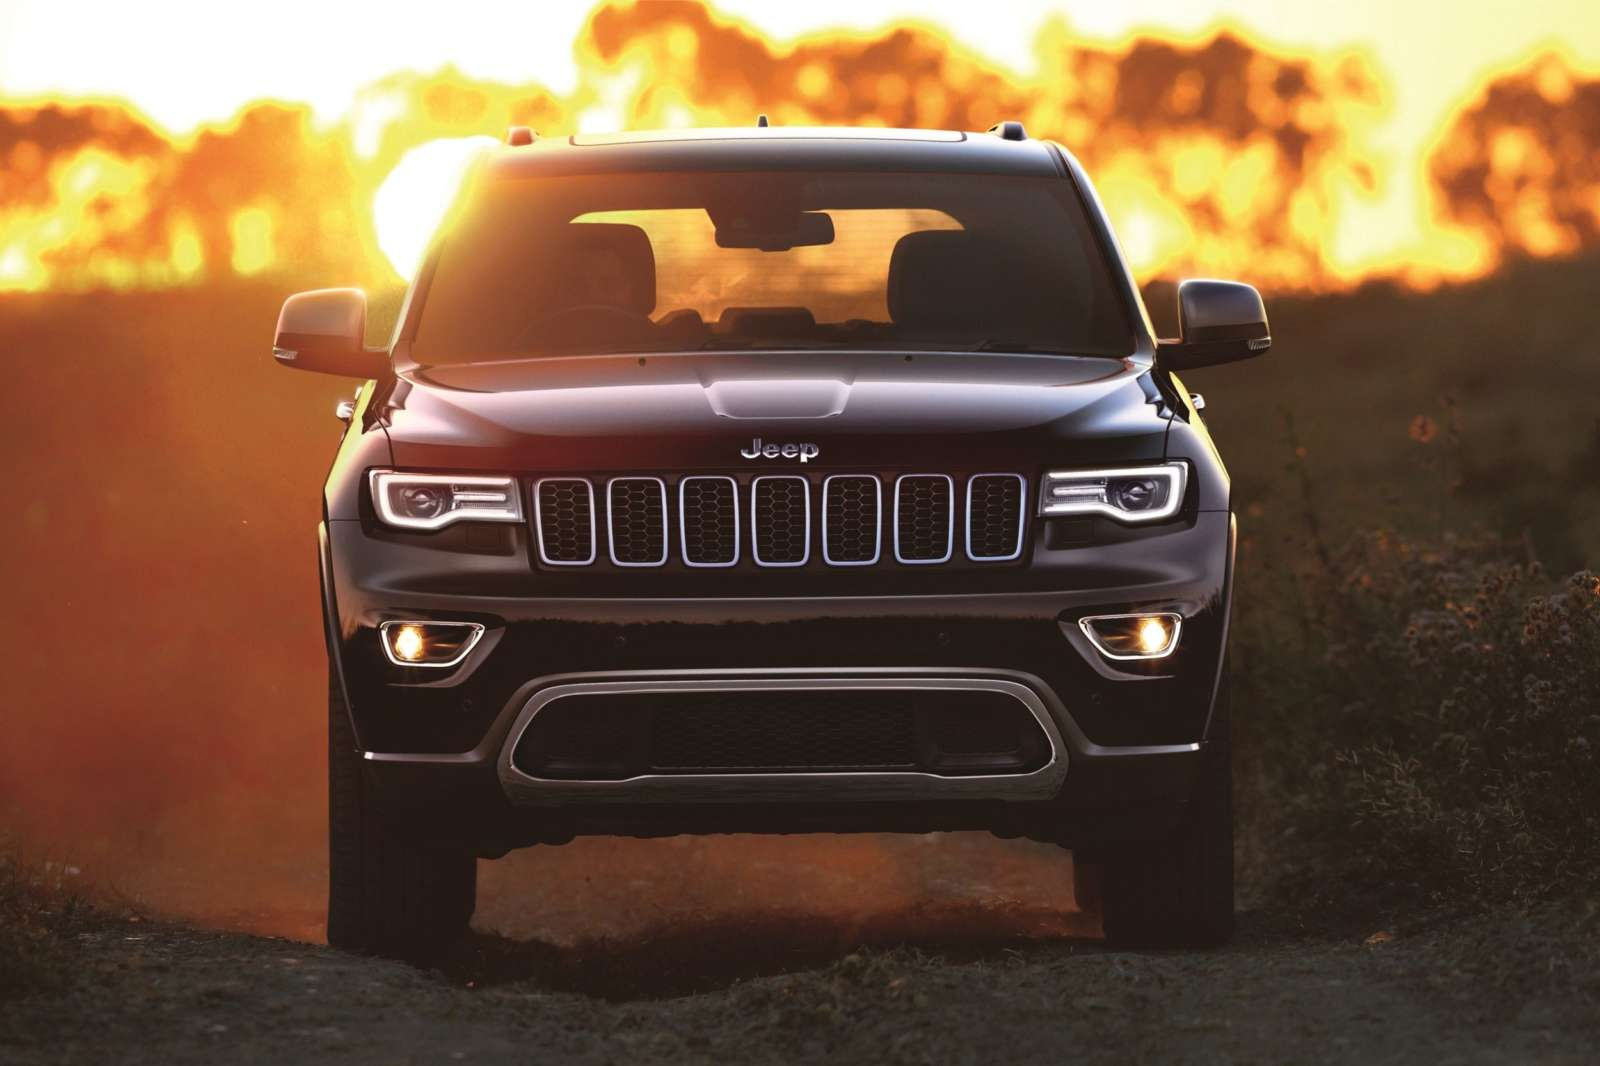 jeep grand cherokee petrol launched in india at inr lakh ex delhi motoroids. Black Bedroom Furniture Sets. Home Design Ideas